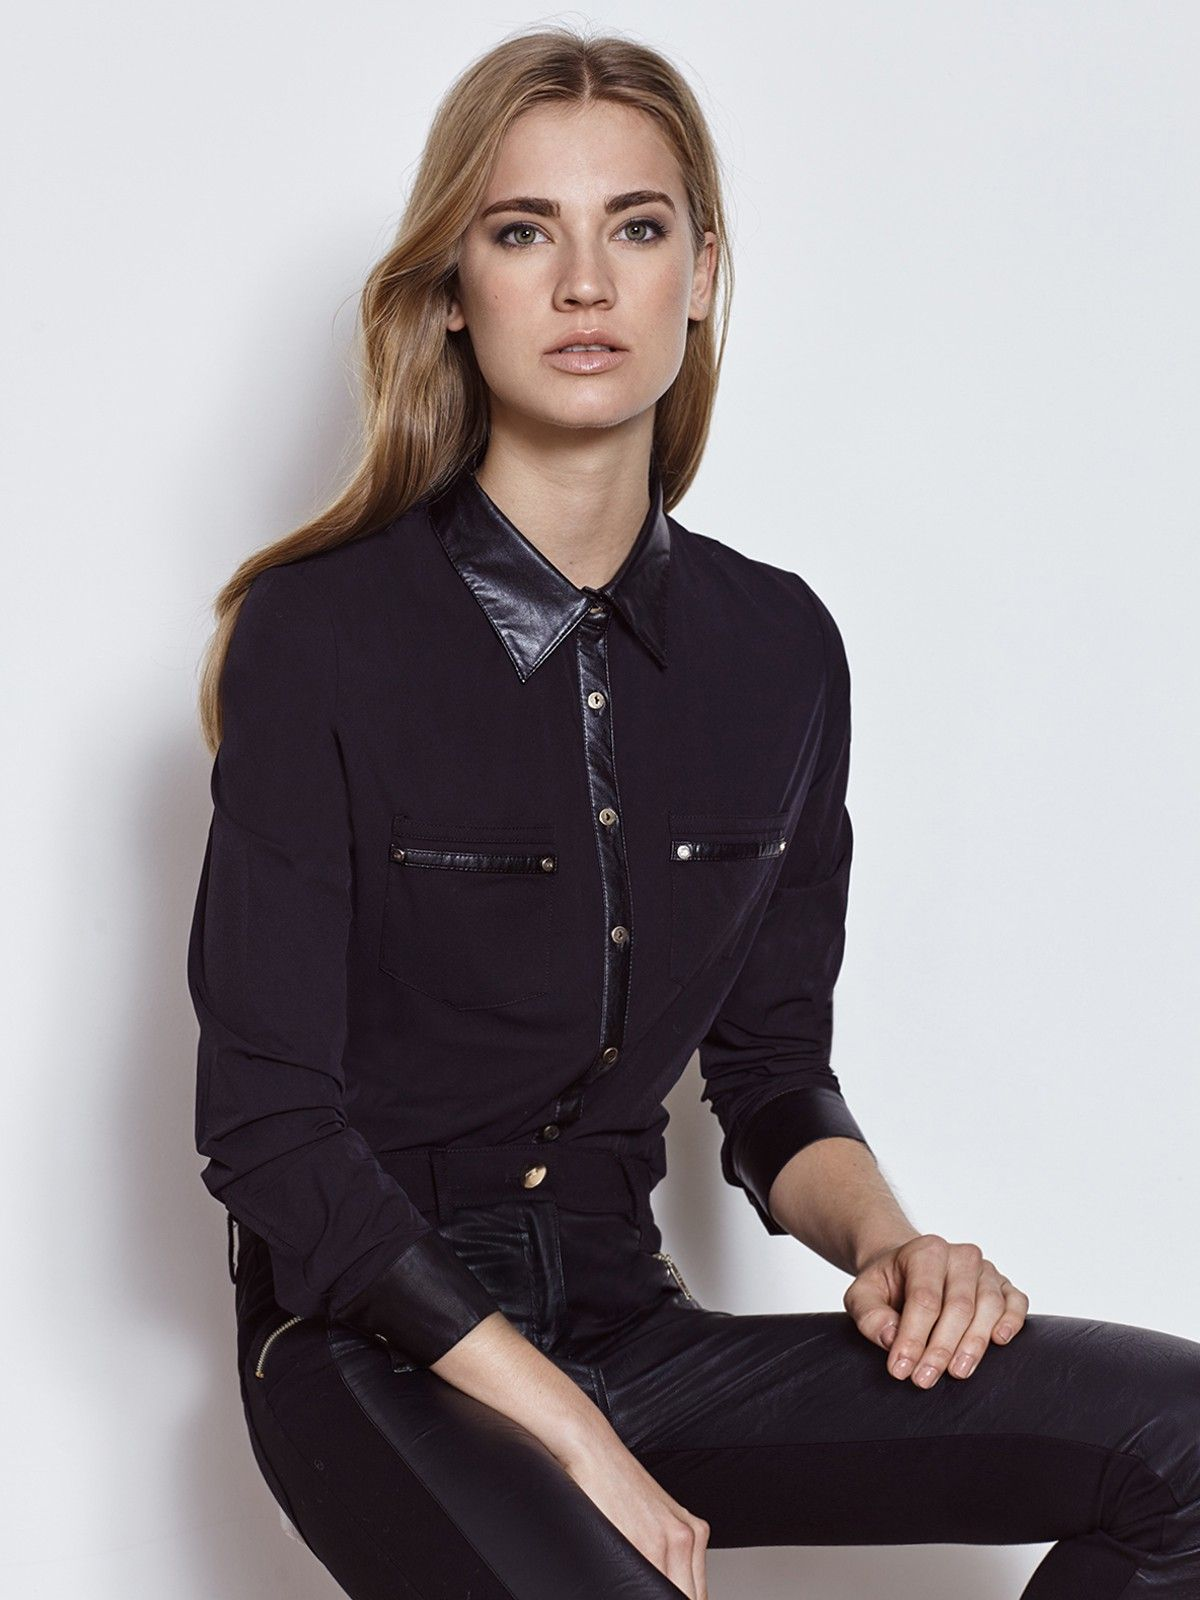 Camisa negra mujer coleccion javier simorra Pedralbes Centre  working d7b982d78644